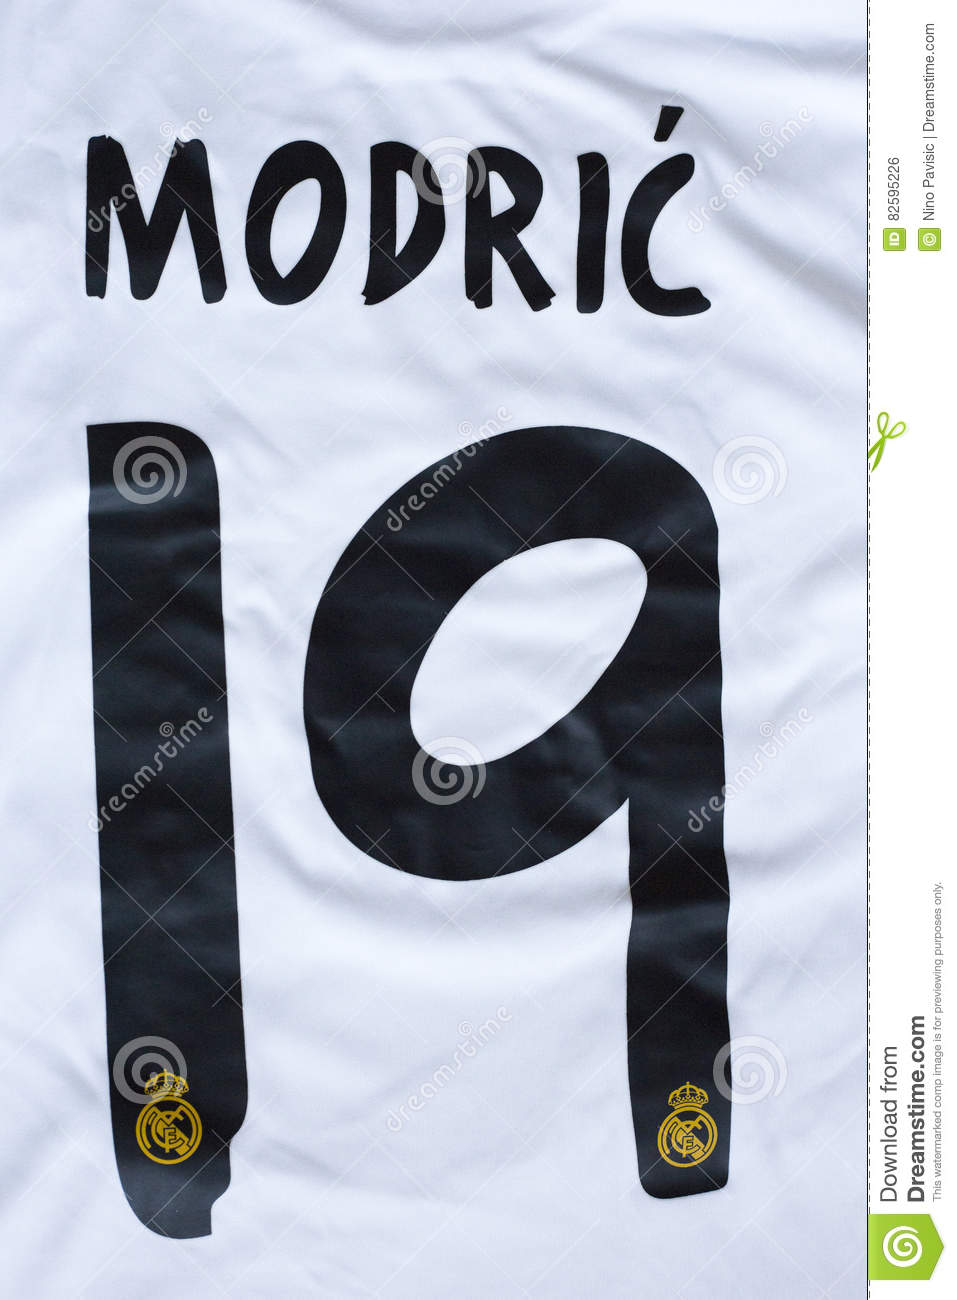 the latest b3dd1 f2664 Luka Modric Real Madrid Shirt Editorial Photo - Image of ...